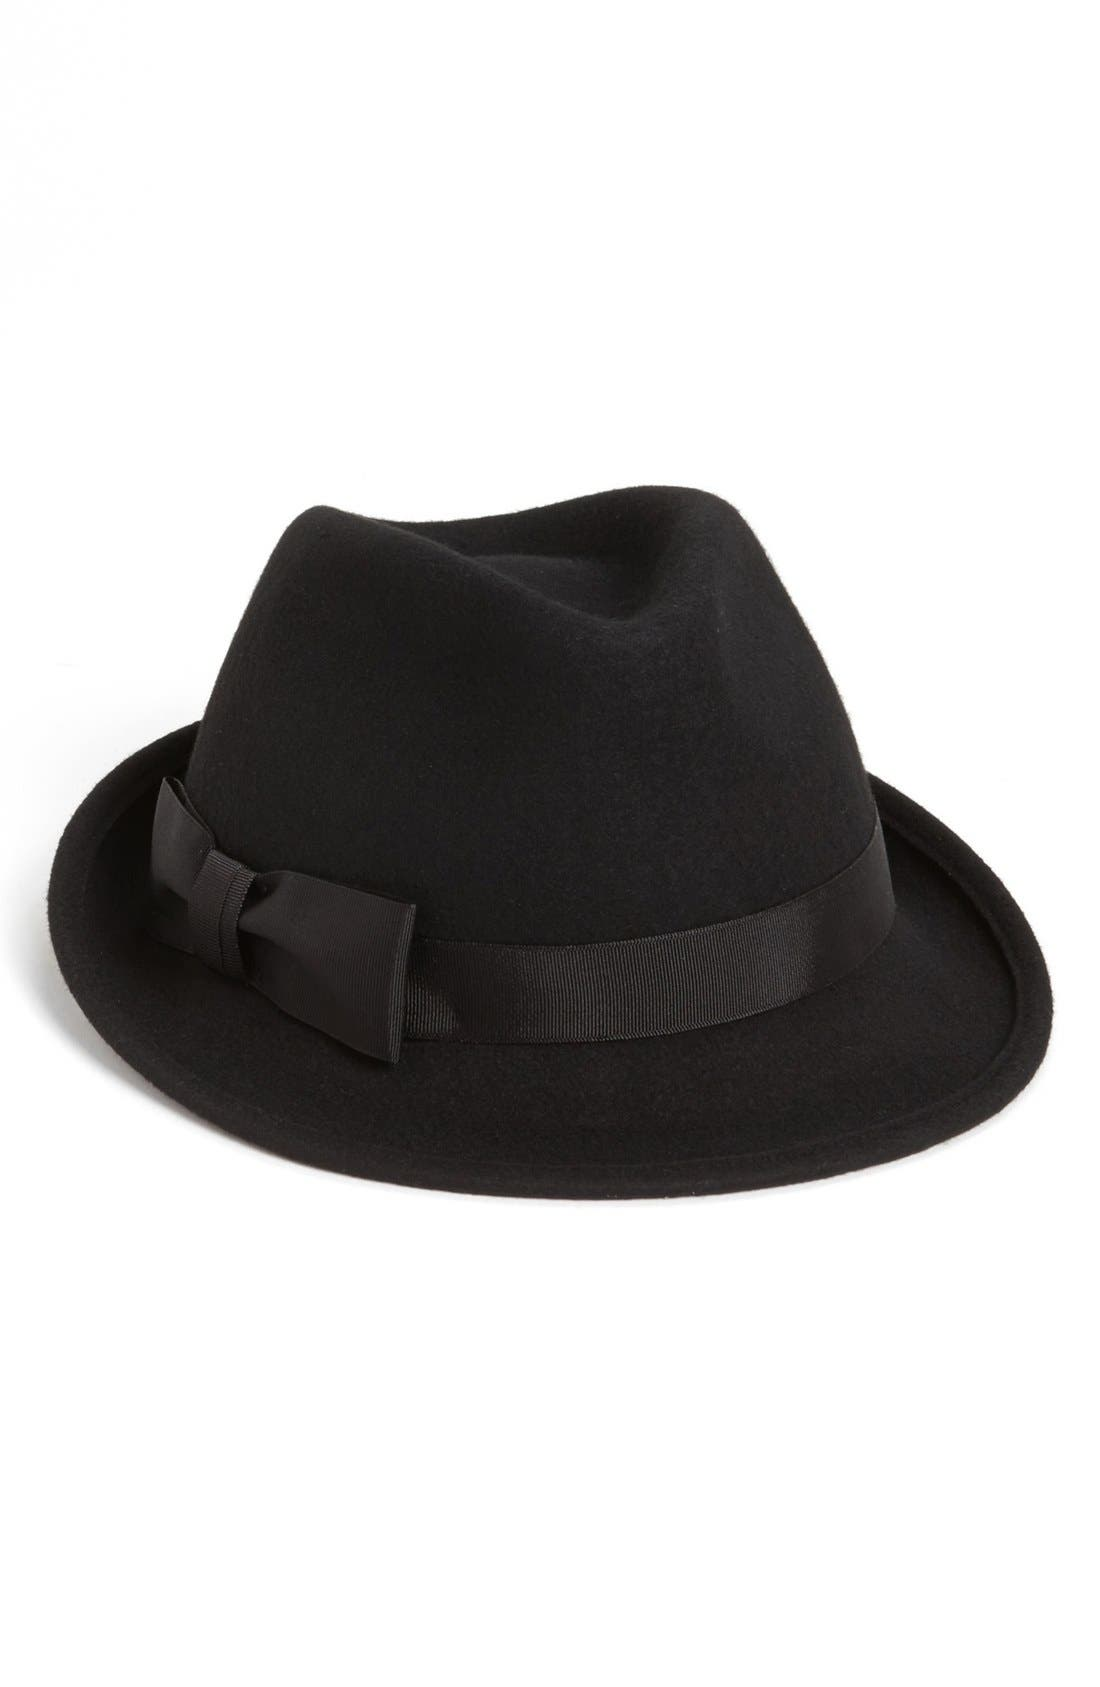 Wool Felt Trilby Hat,                             Alternate thumbnail 3, color,                             001